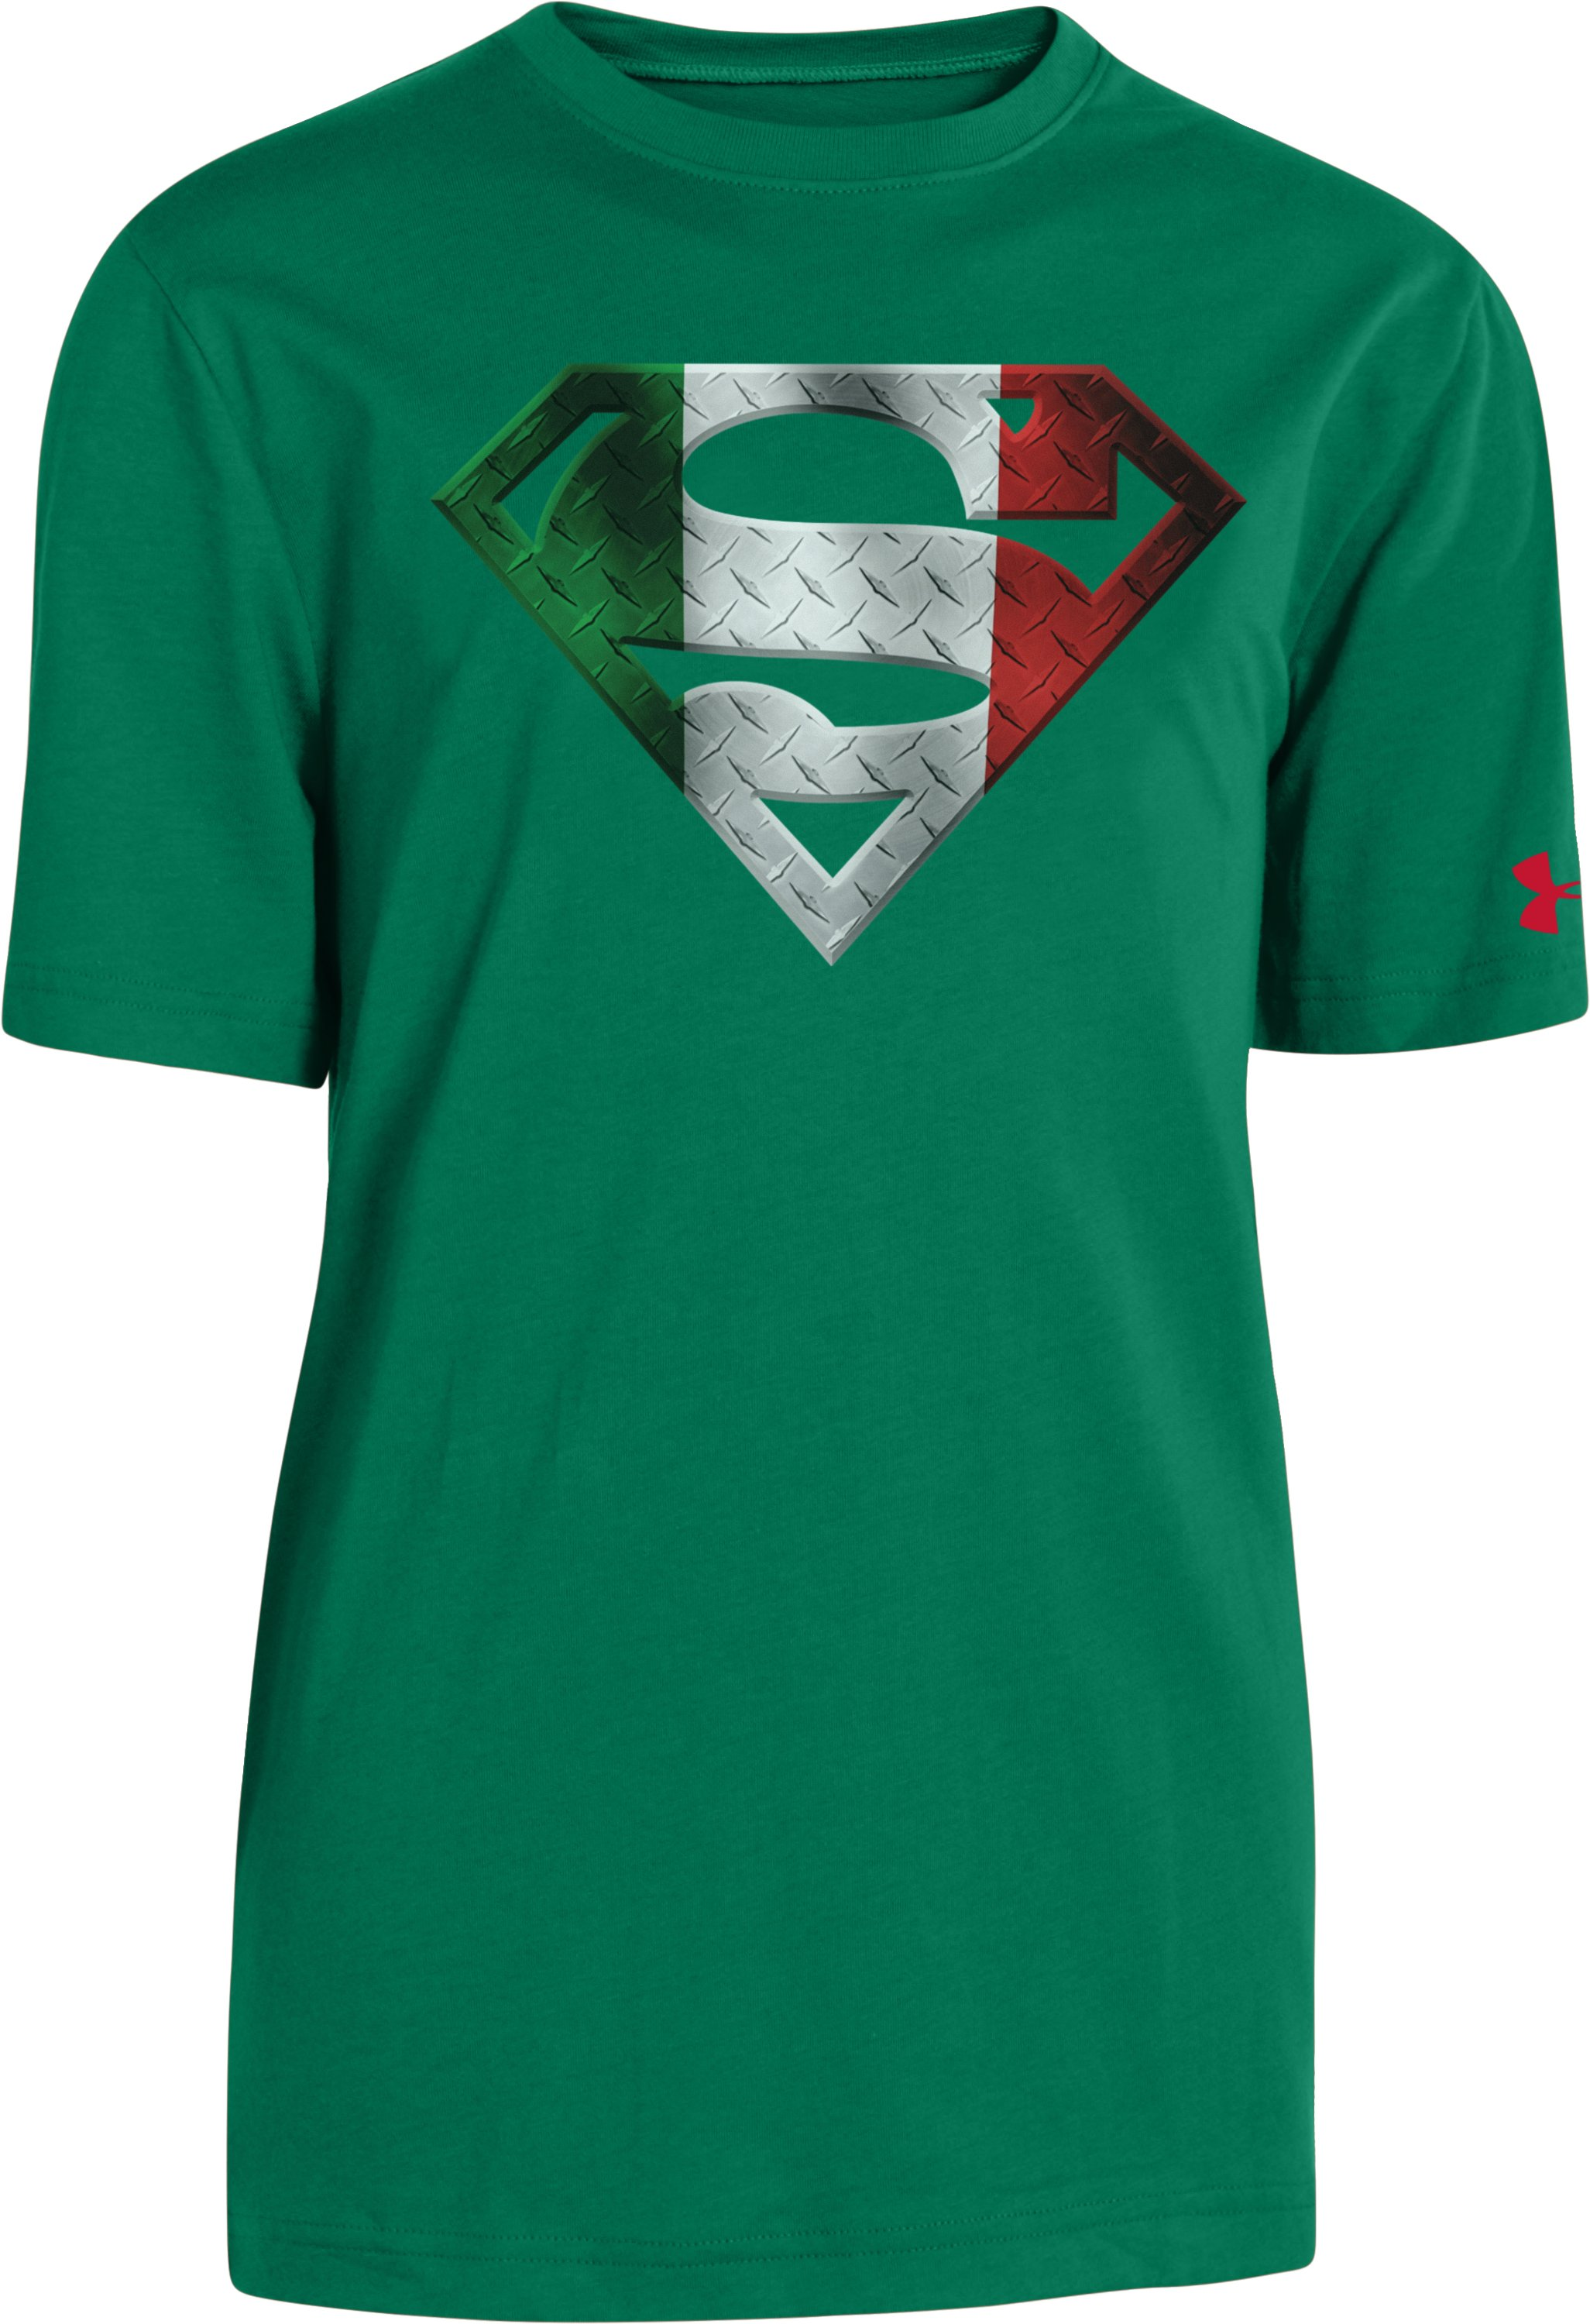 Boys' Mexico Under Armour® Alter Ego Superman T-Shirt, Classic Green, zoomed image